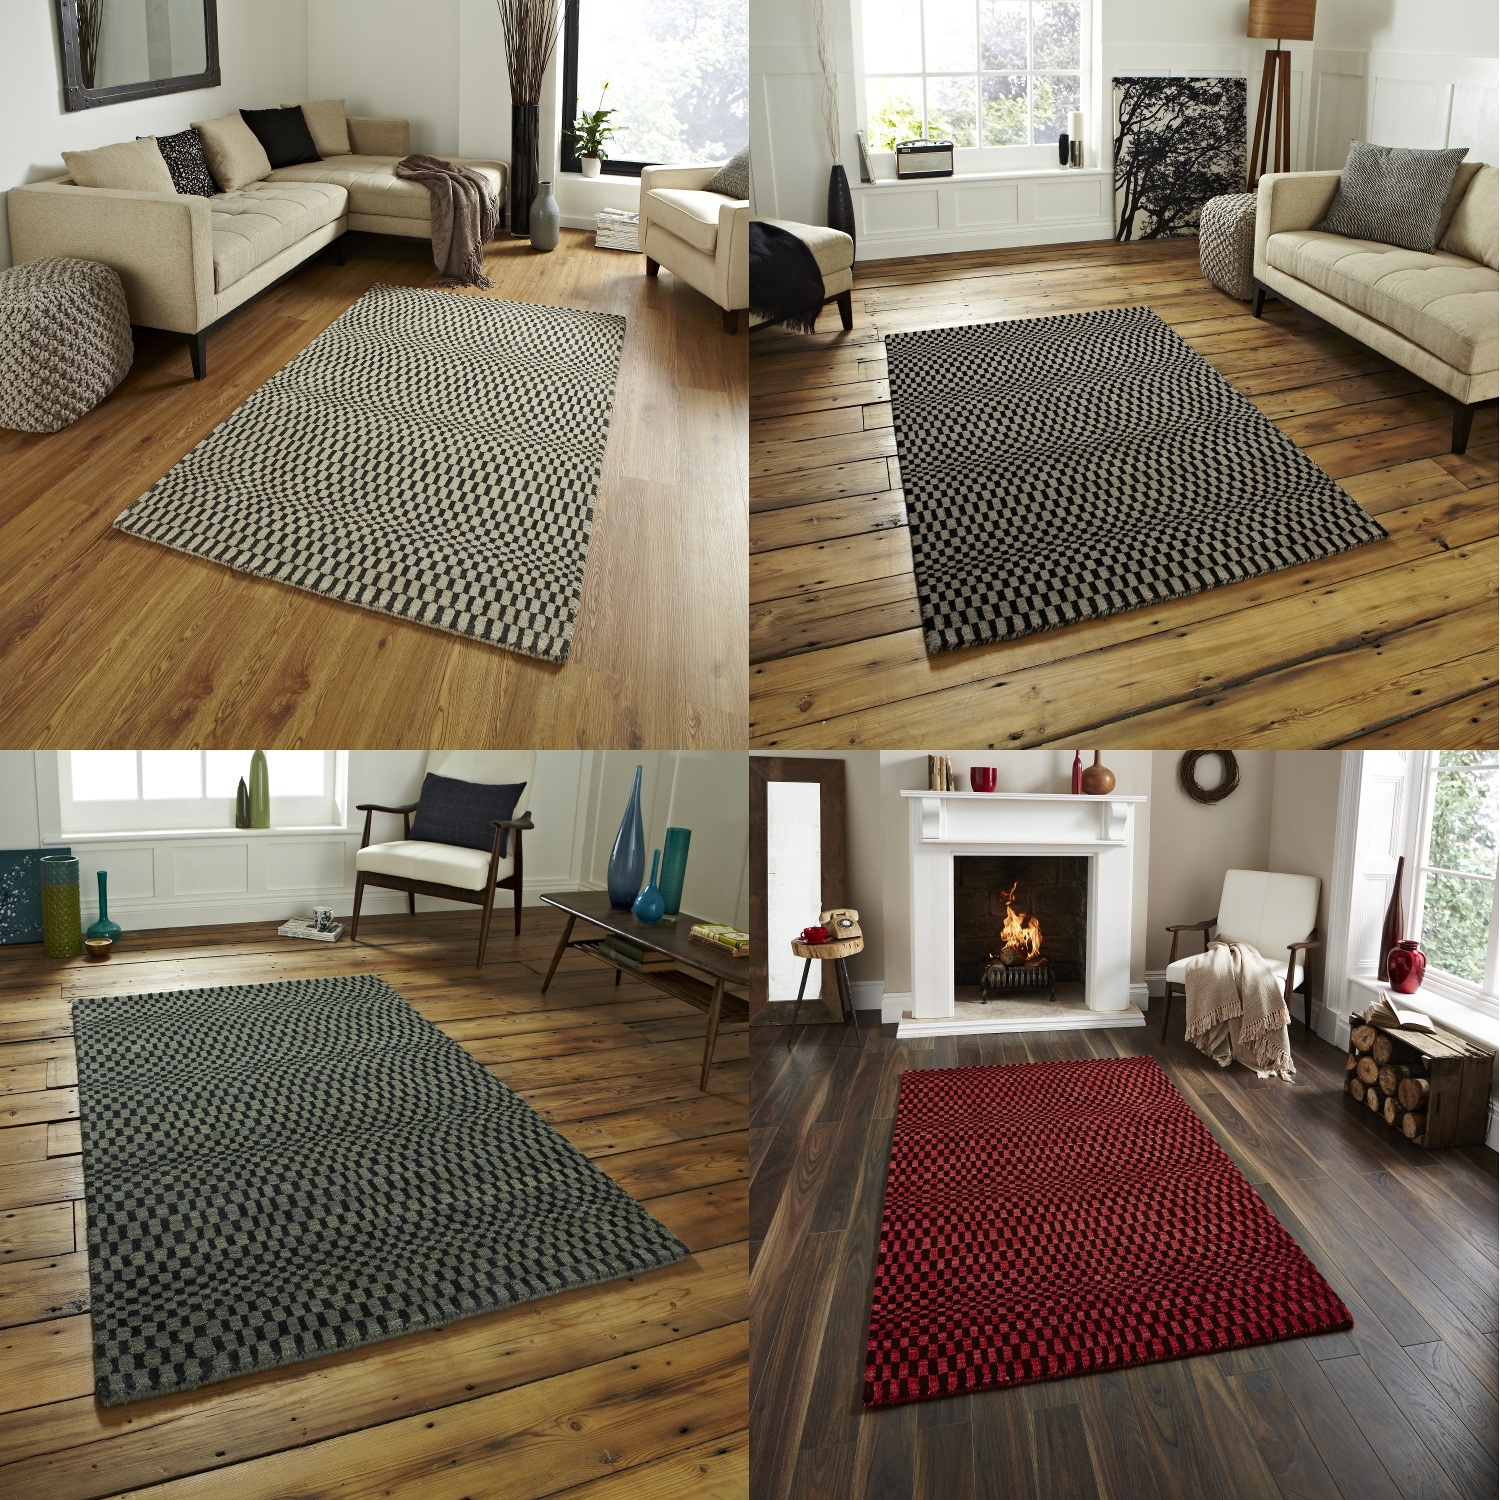 illusion optical rug wave sonic floor mat effect knotted wool hand grey beige description